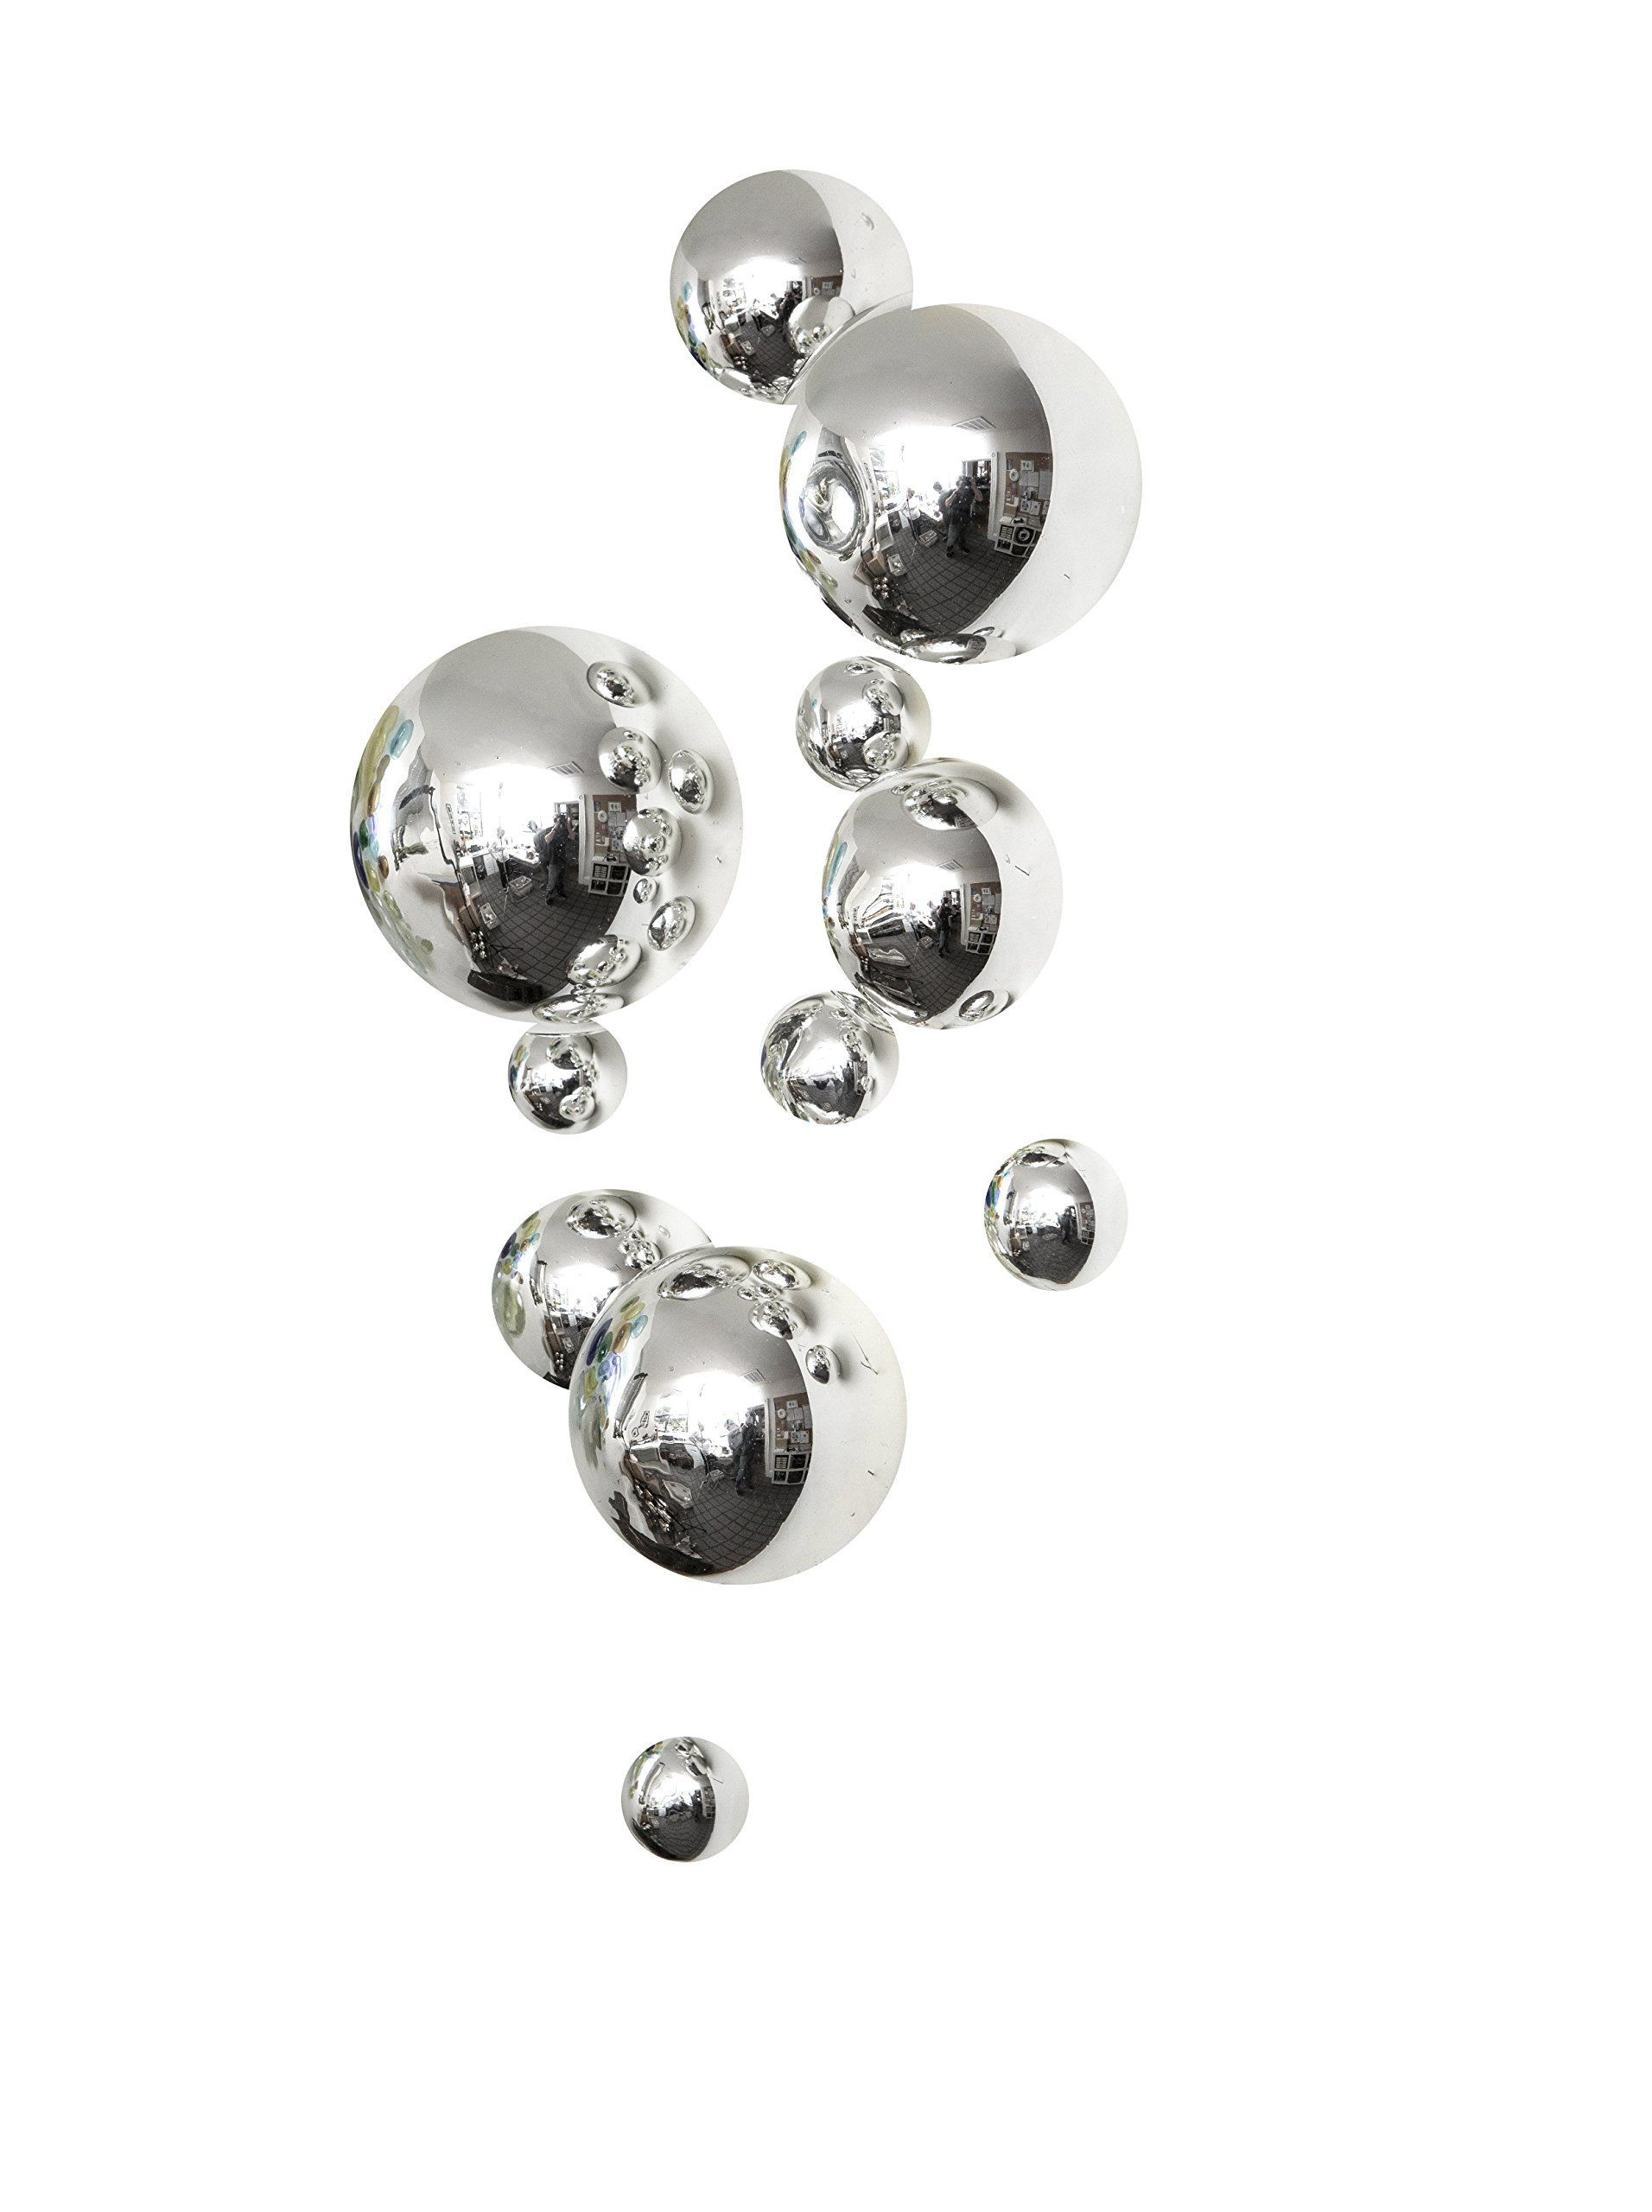 glass sphere vase of worldly goods set of 11 glass wall spheres silver at myhabit home with regard to worldly goods set of 11 glass wall spheres silver at myhabit